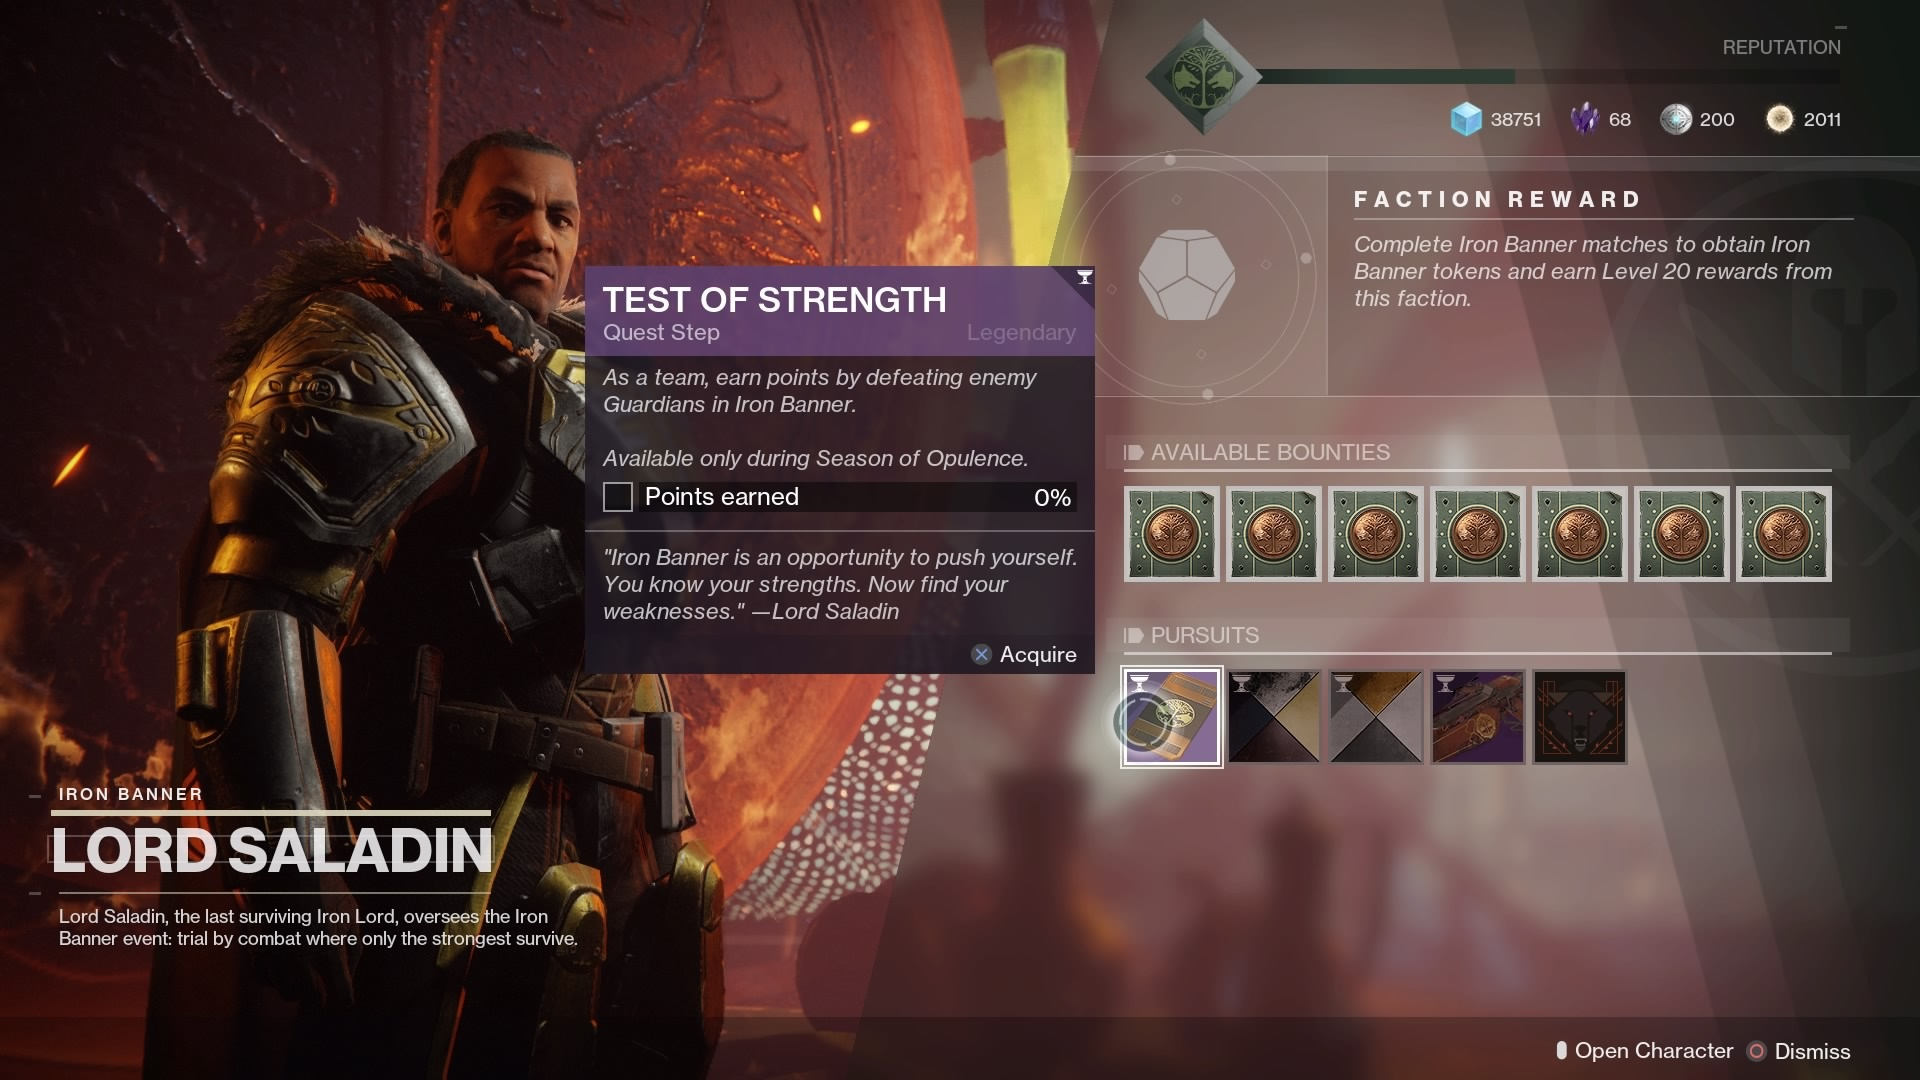 Destiny 2: How to Complete the Test of Strength Iron Banner Quest